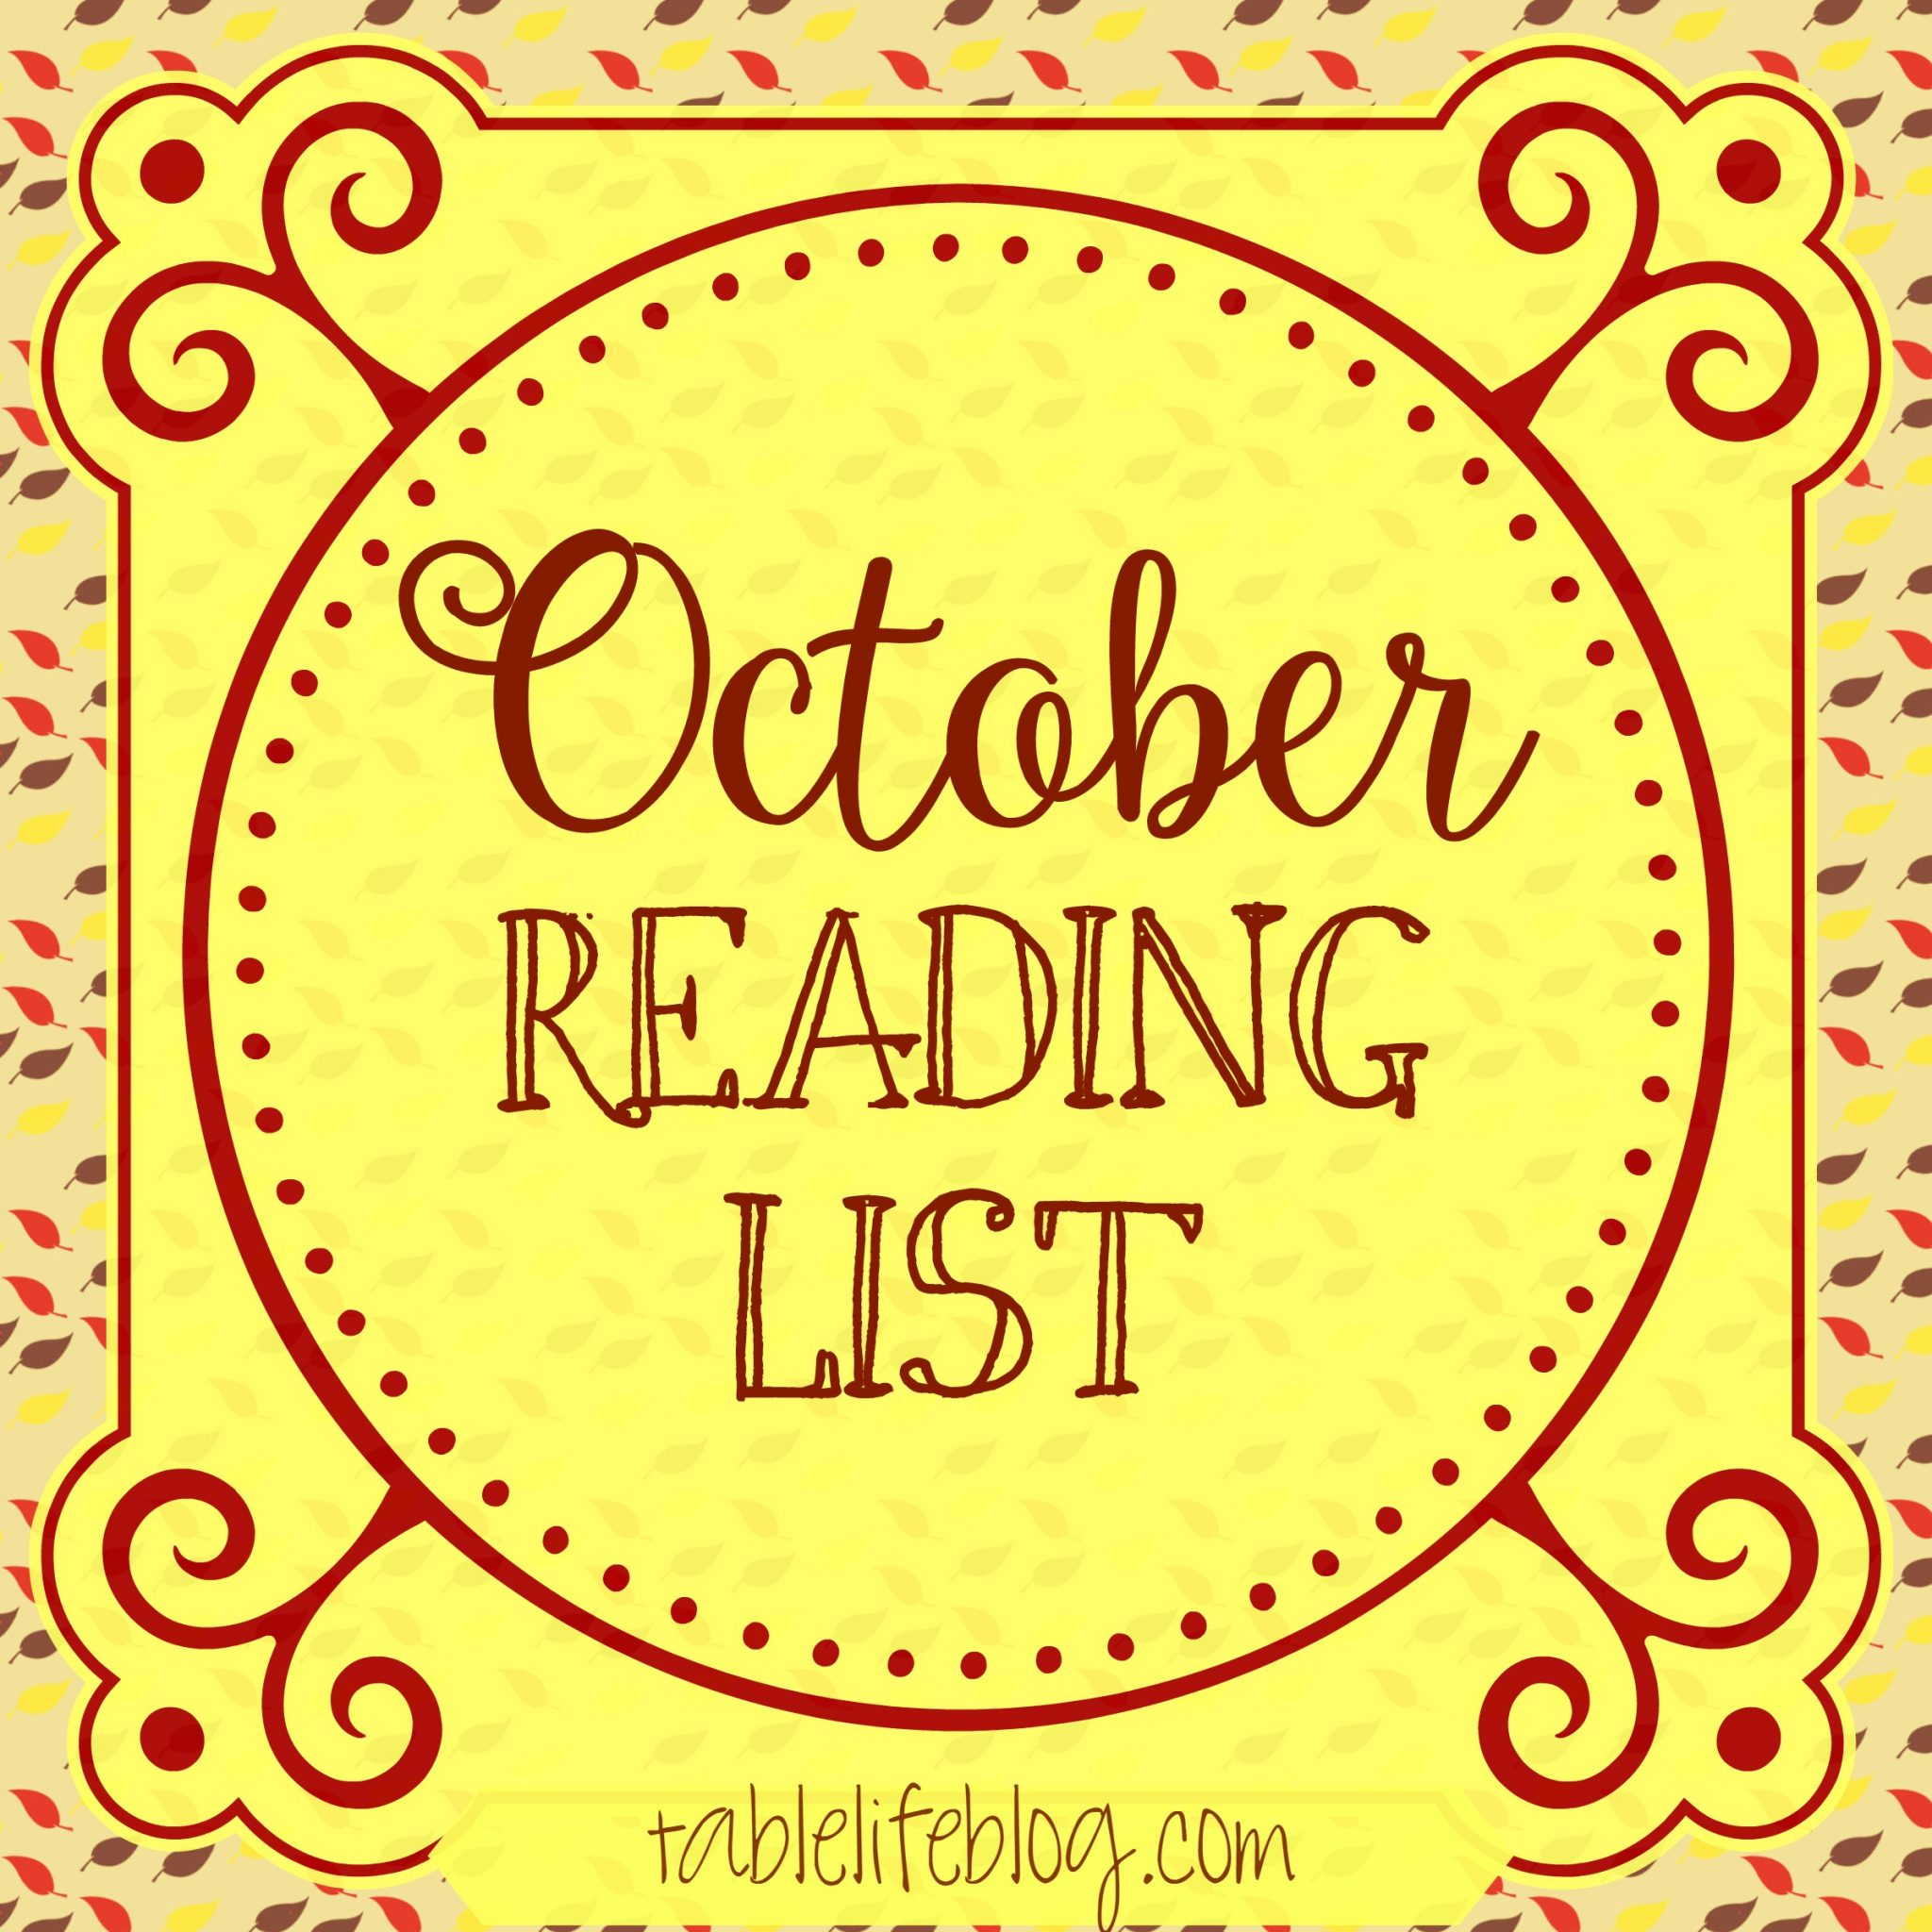 October Reading List